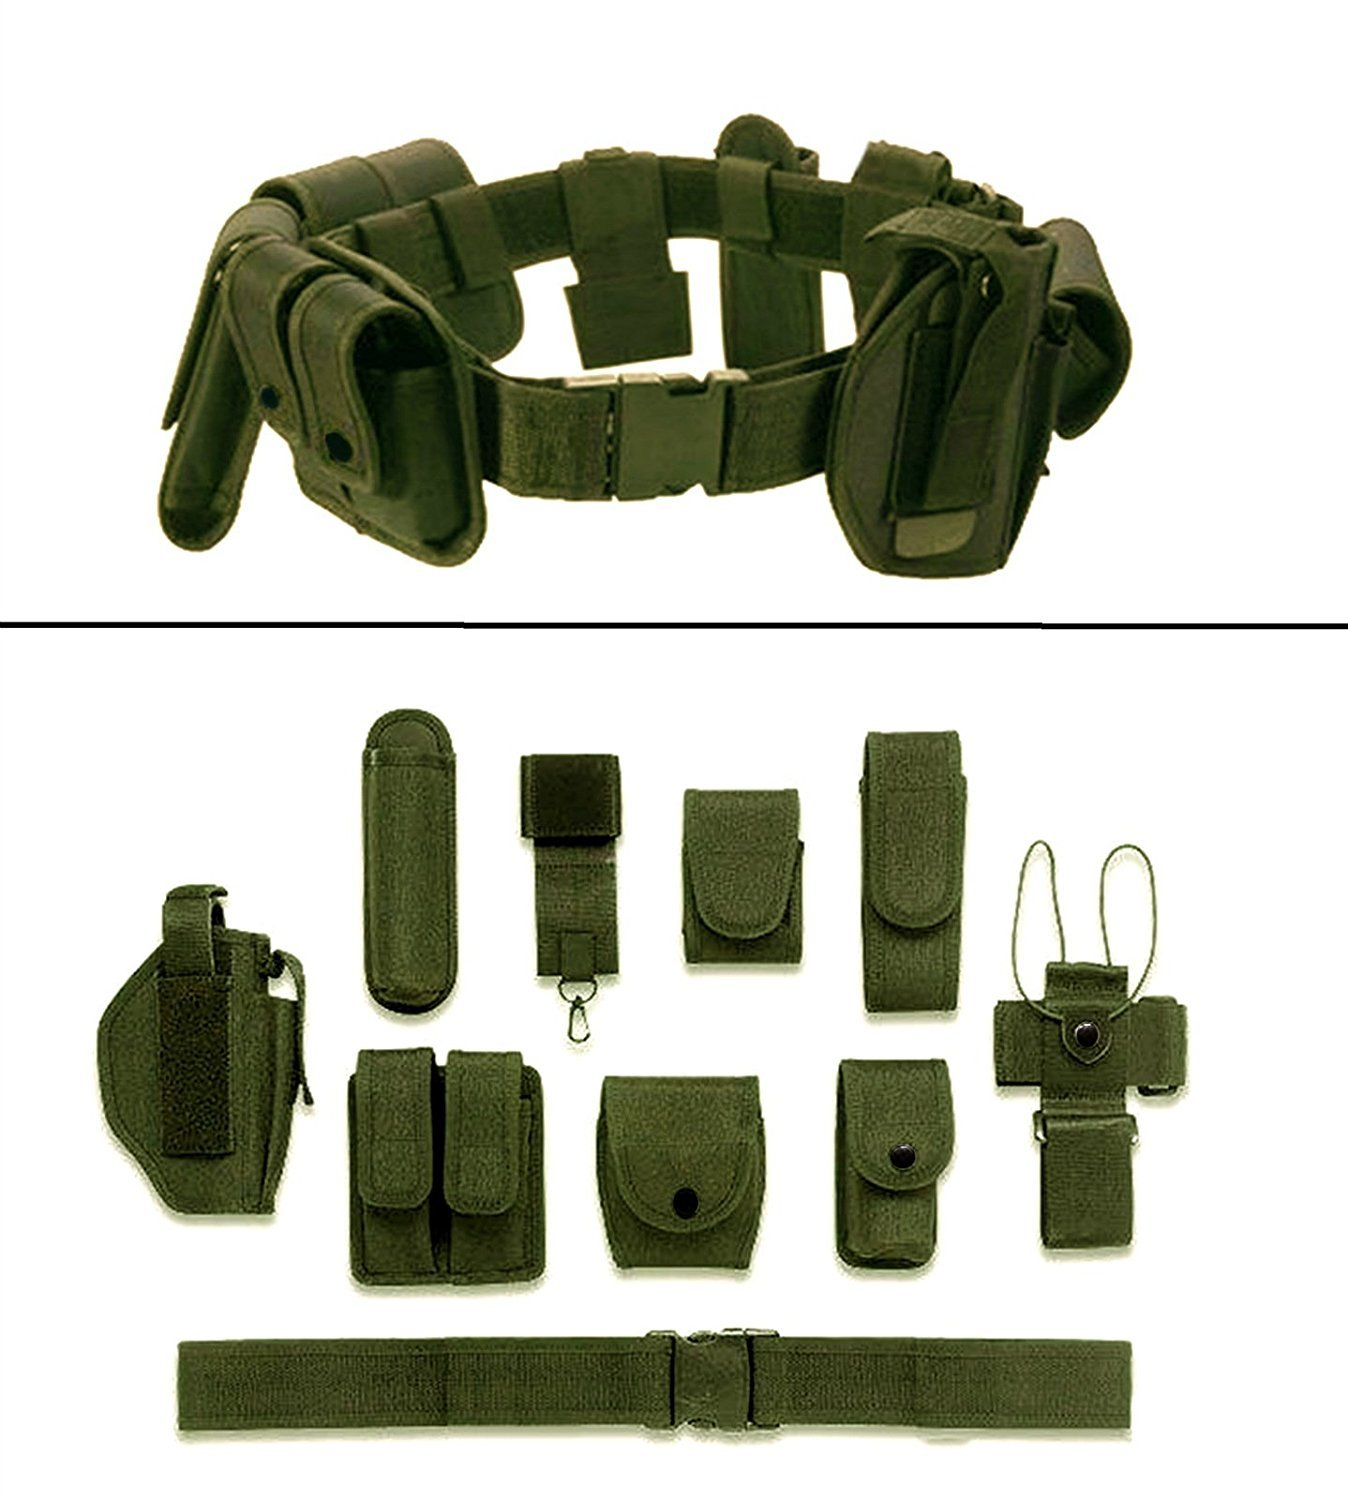 Olive Green 10-Pc Military Duty Nylon Utility Belt - DeluxeAdultCostumes.com